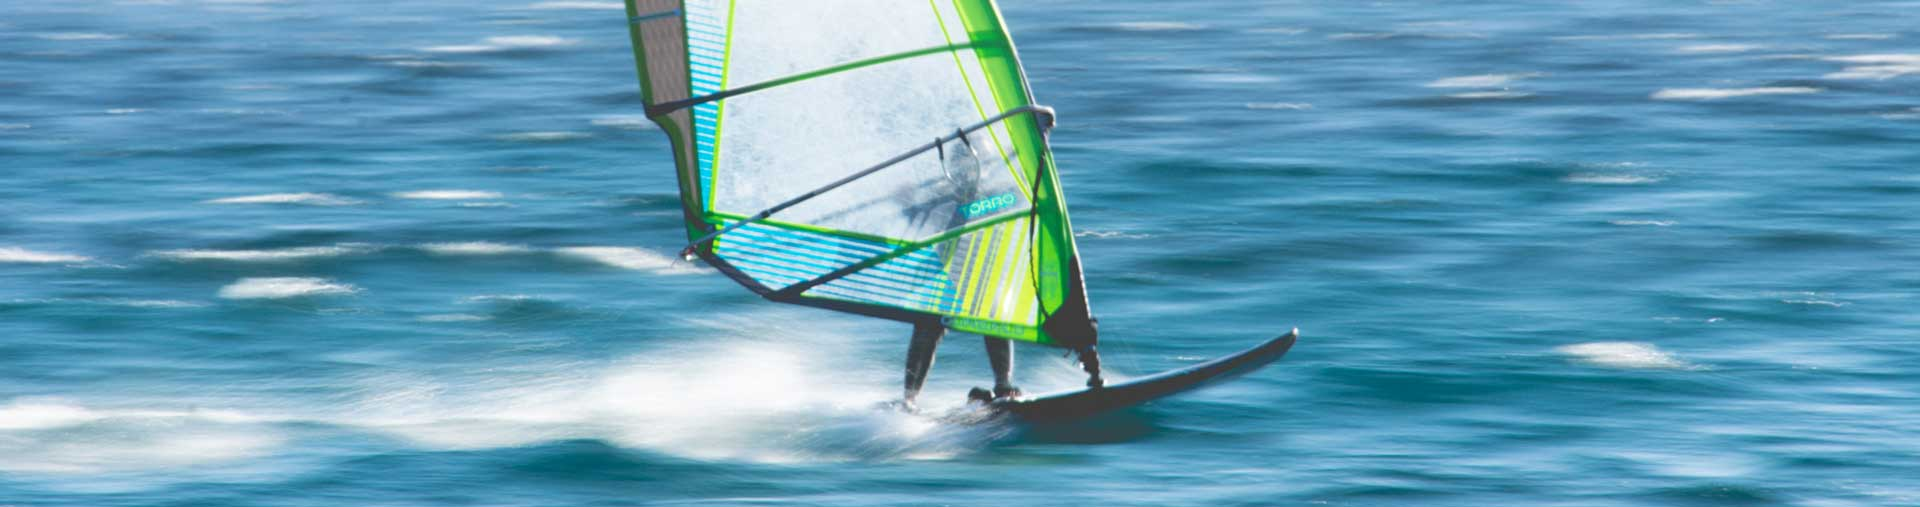 windsurfing-in-the-red-sea